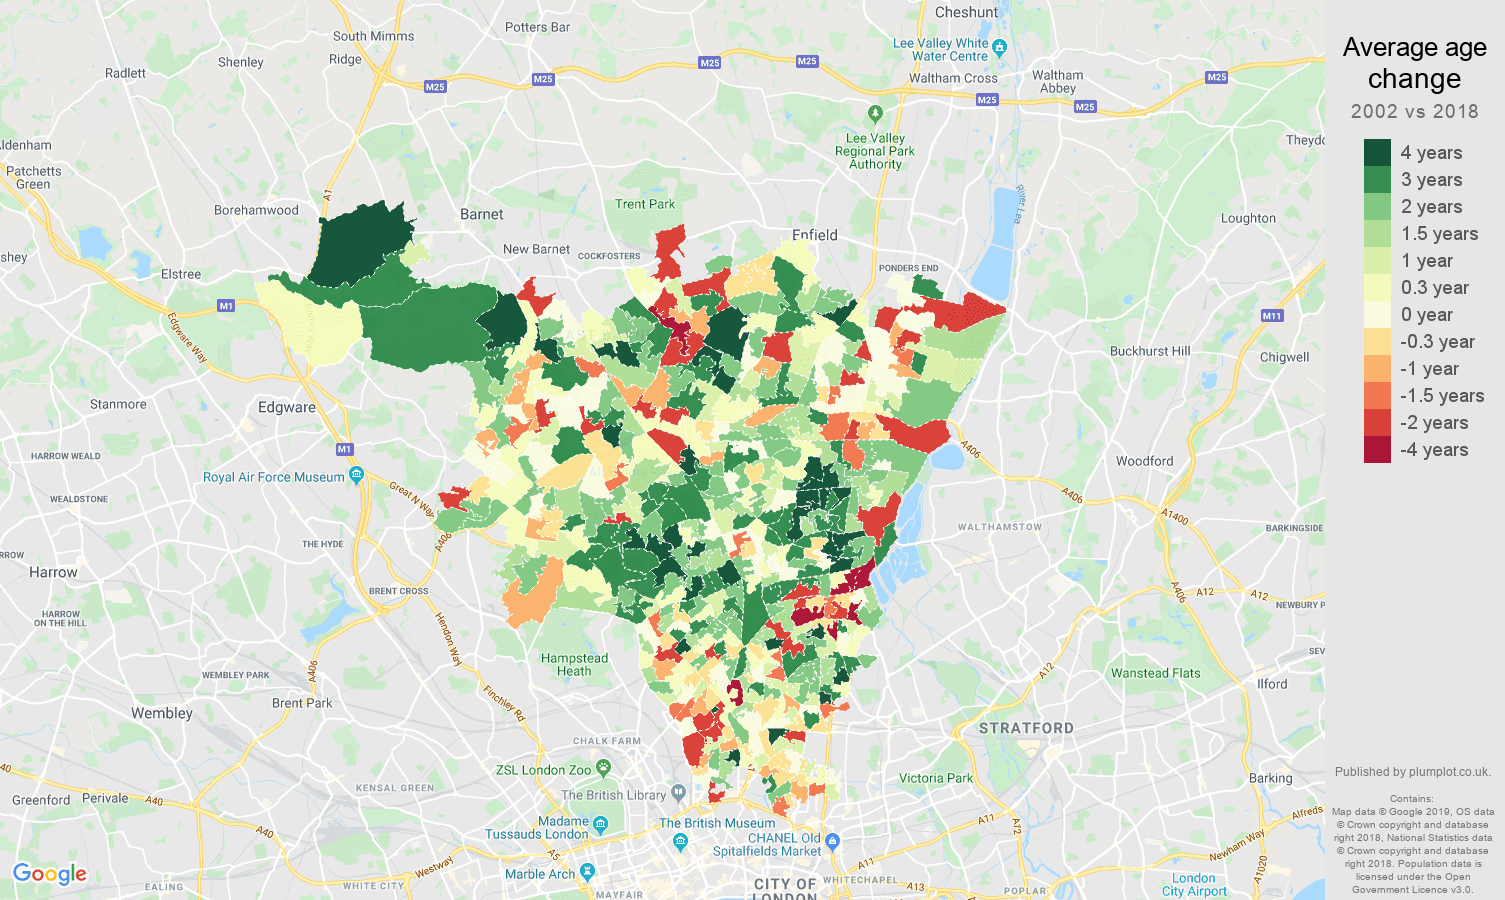 North London average age change map